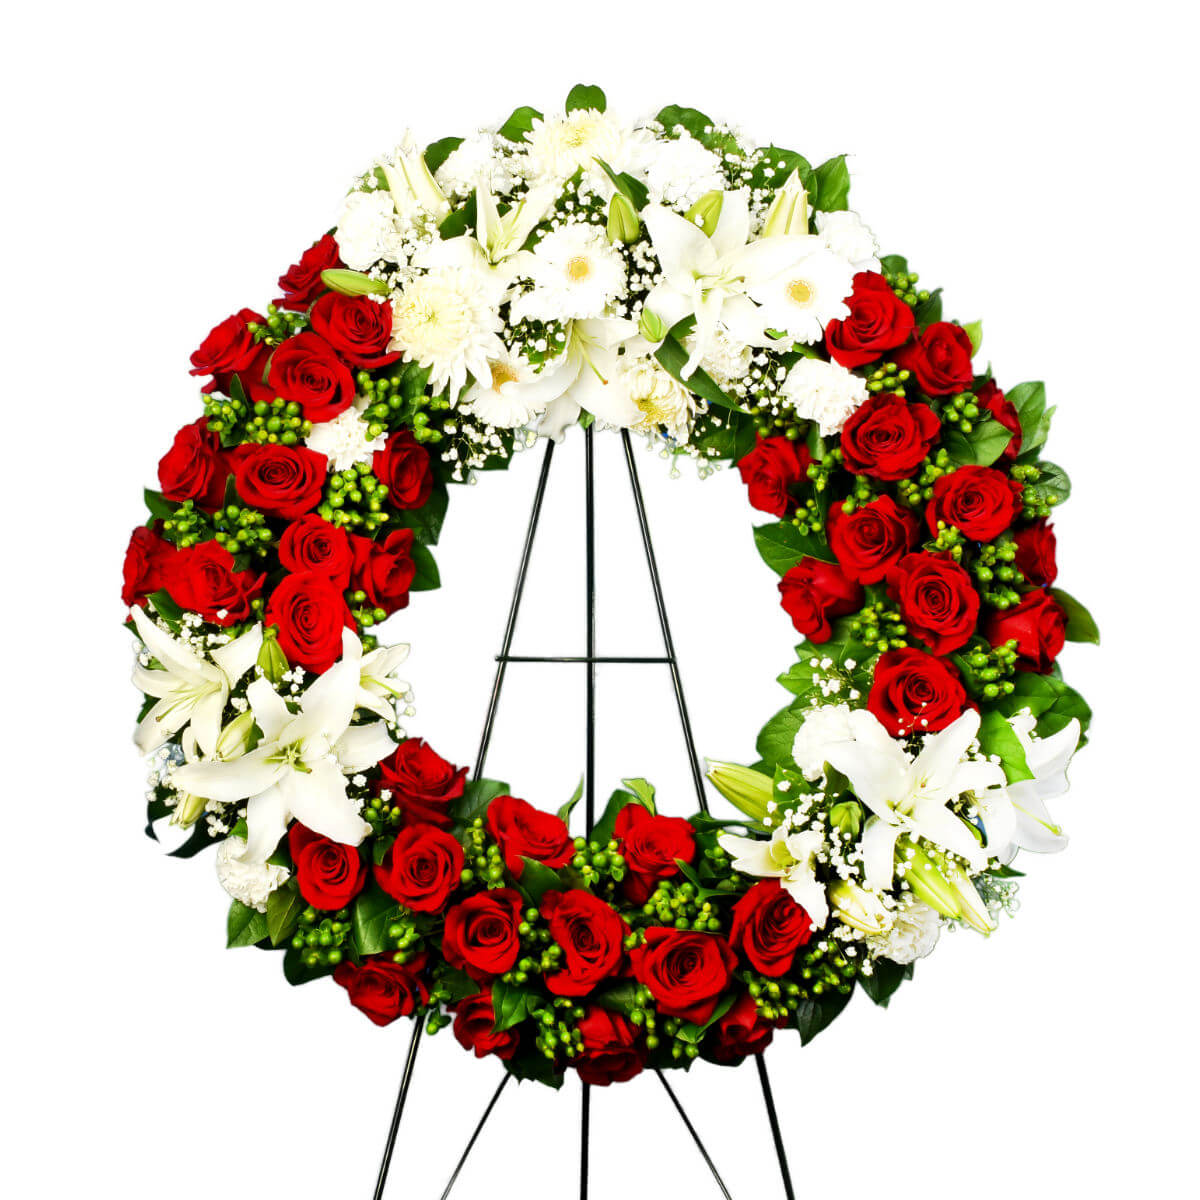 Red and White Funeral Flower Wreath | Burnaby BC Florist Adele Rae